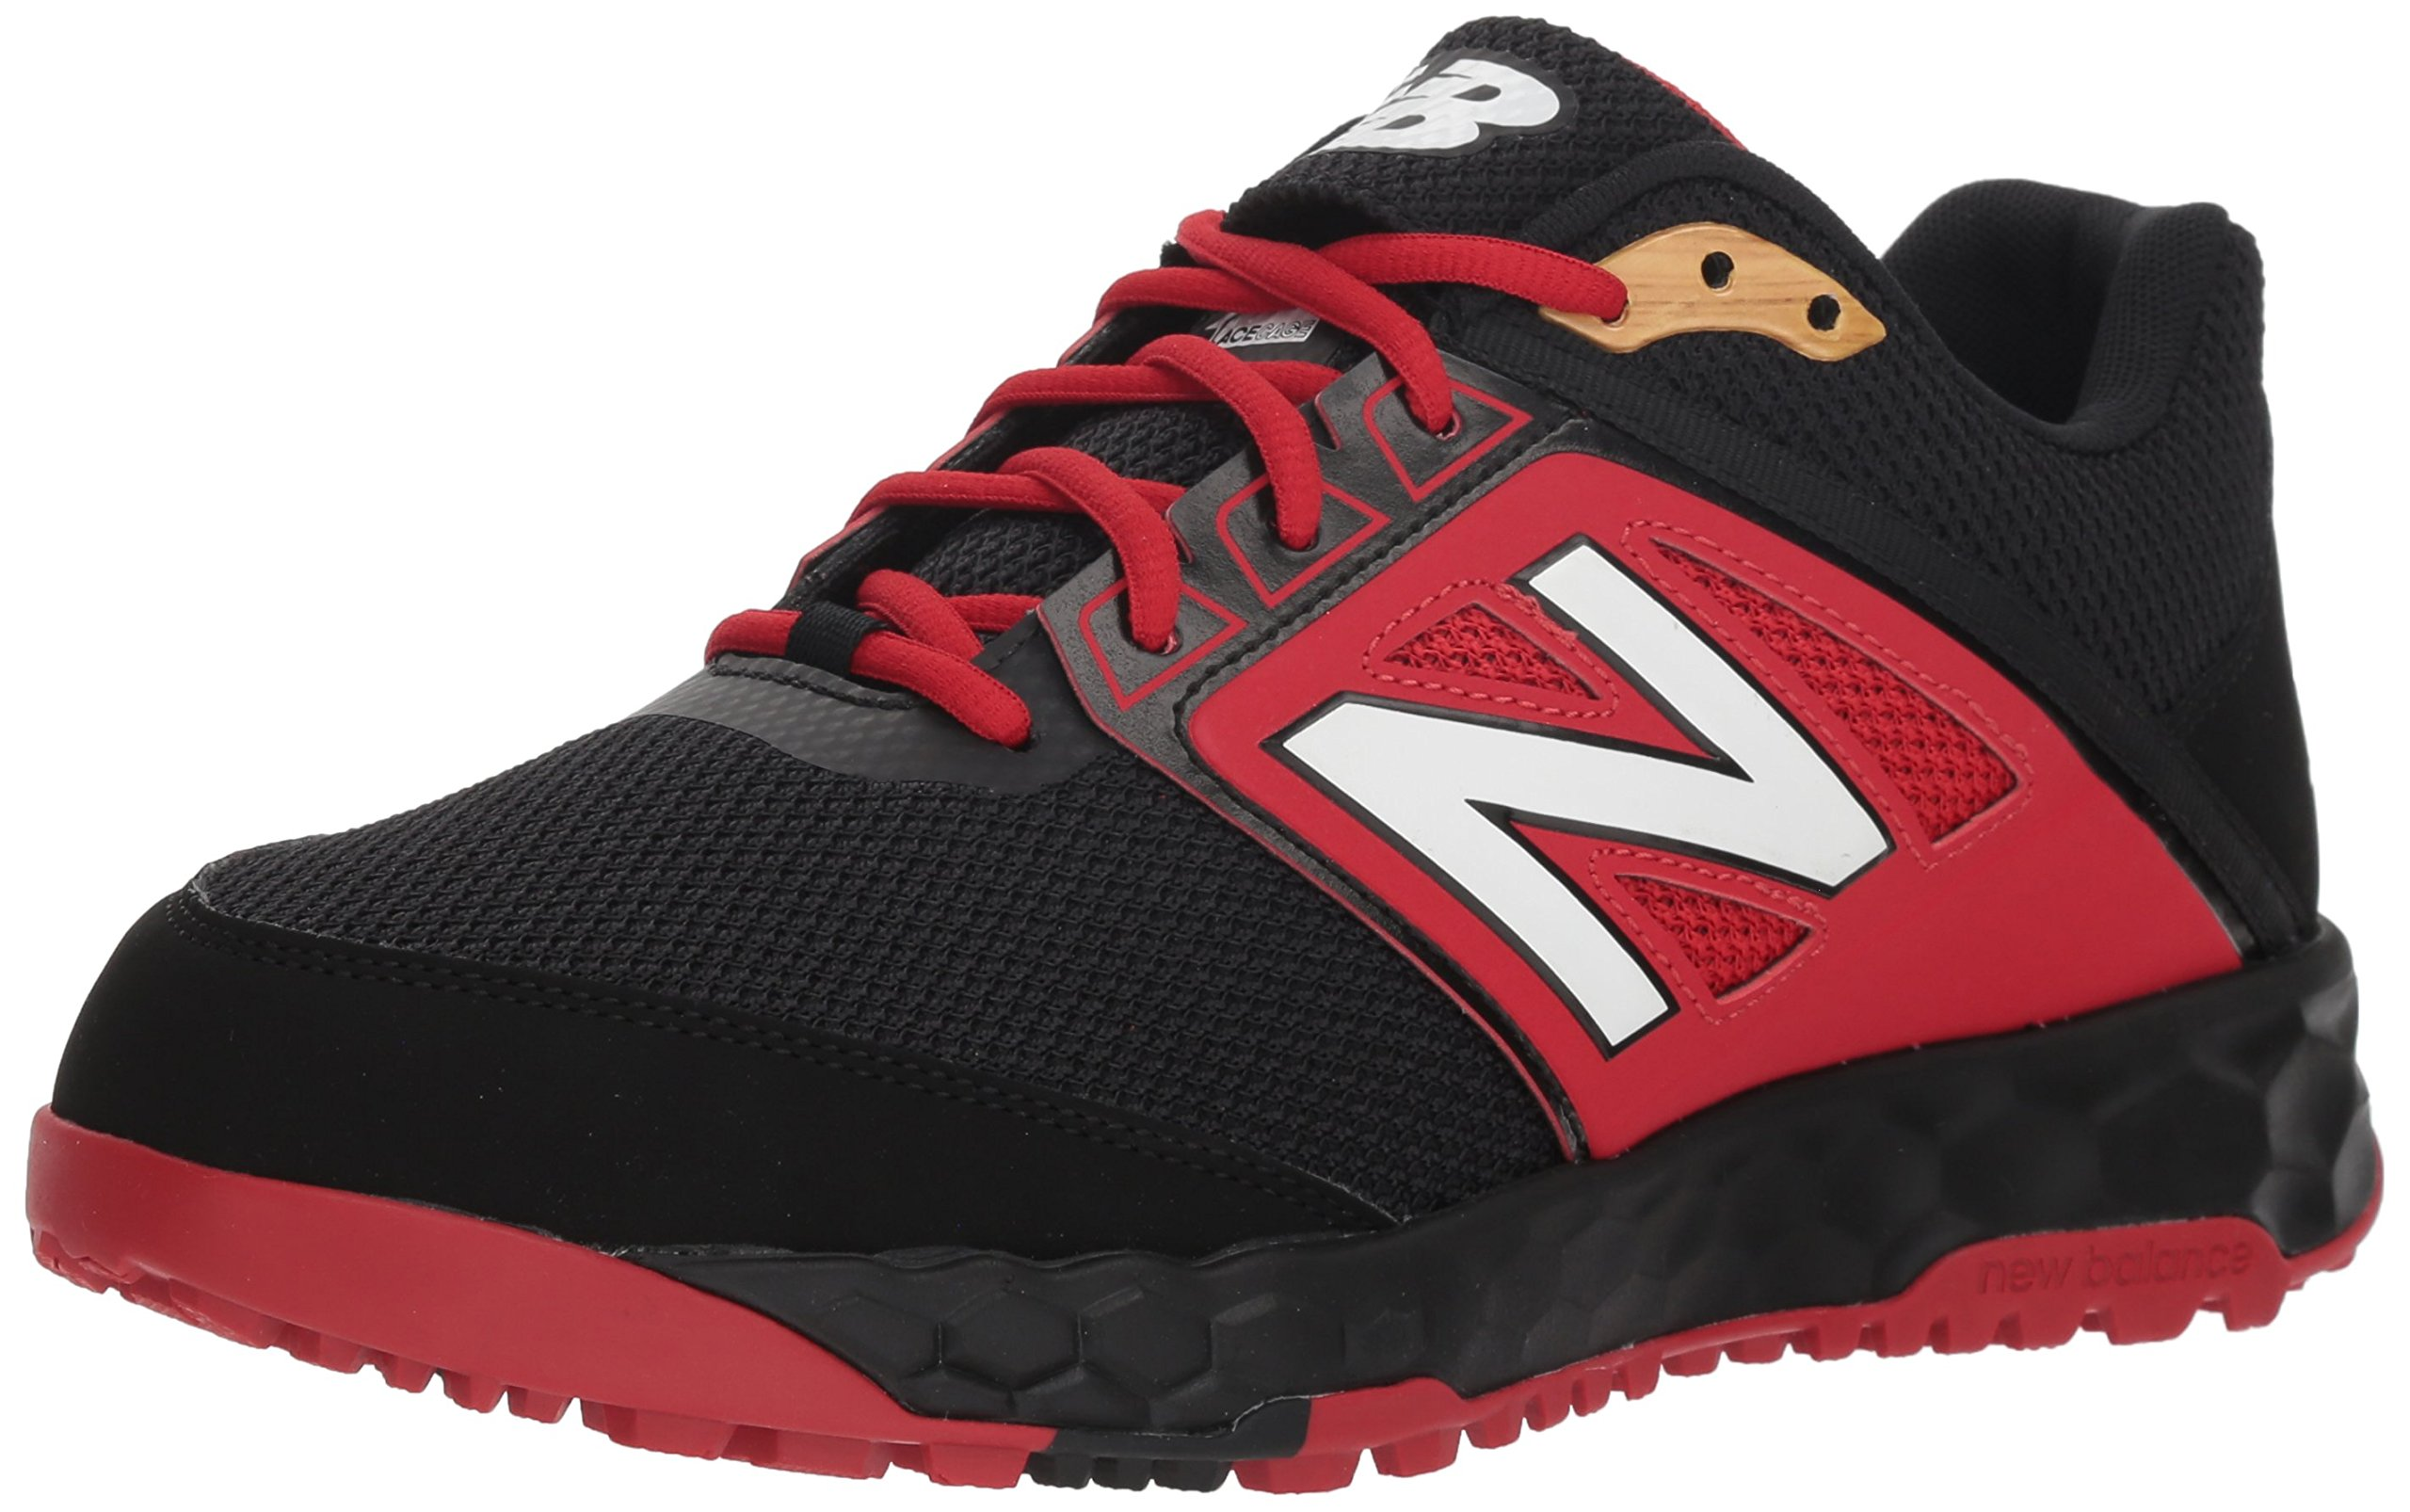 New Balance Men's 3000v4 Turf Baseball Shoe, Black/red, 5 D US